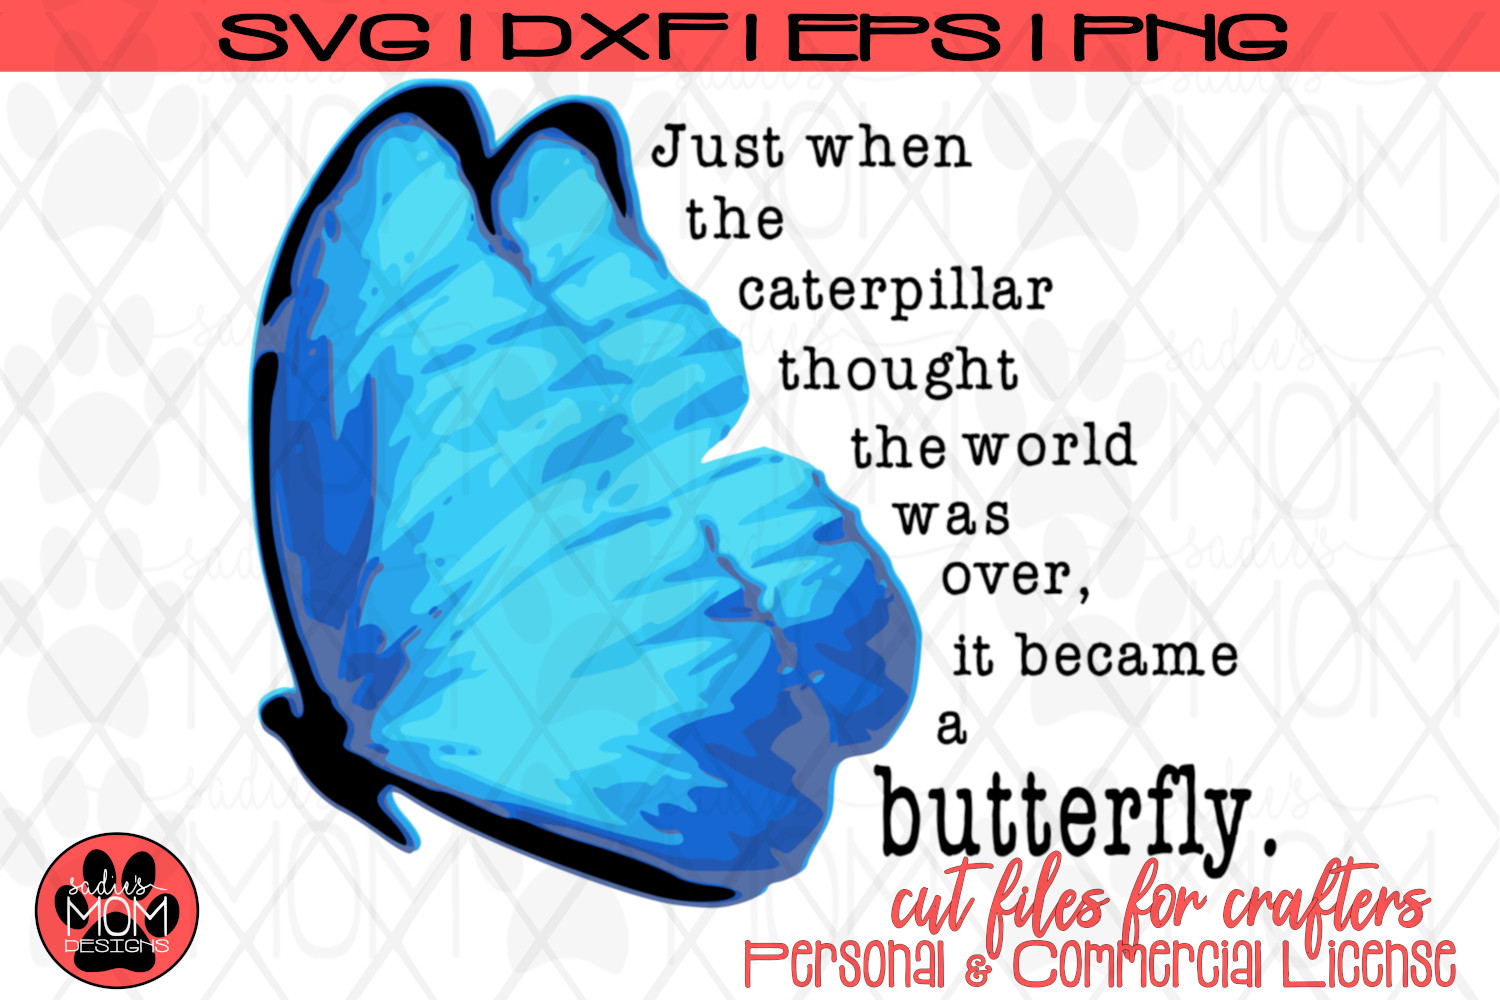 Butterfly Saying - Just When the Caterpillar | SVG Cut File example image 3